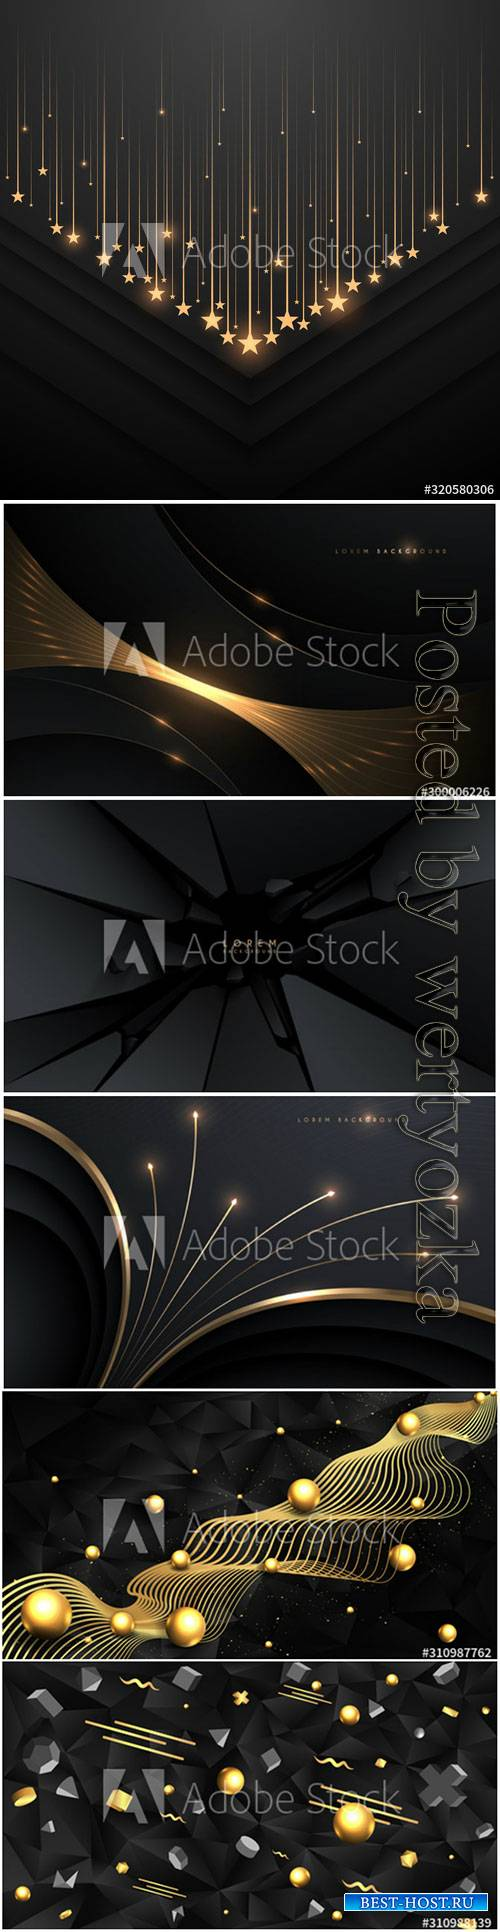 Golden black 3D primitives realistic geometric vector illustration